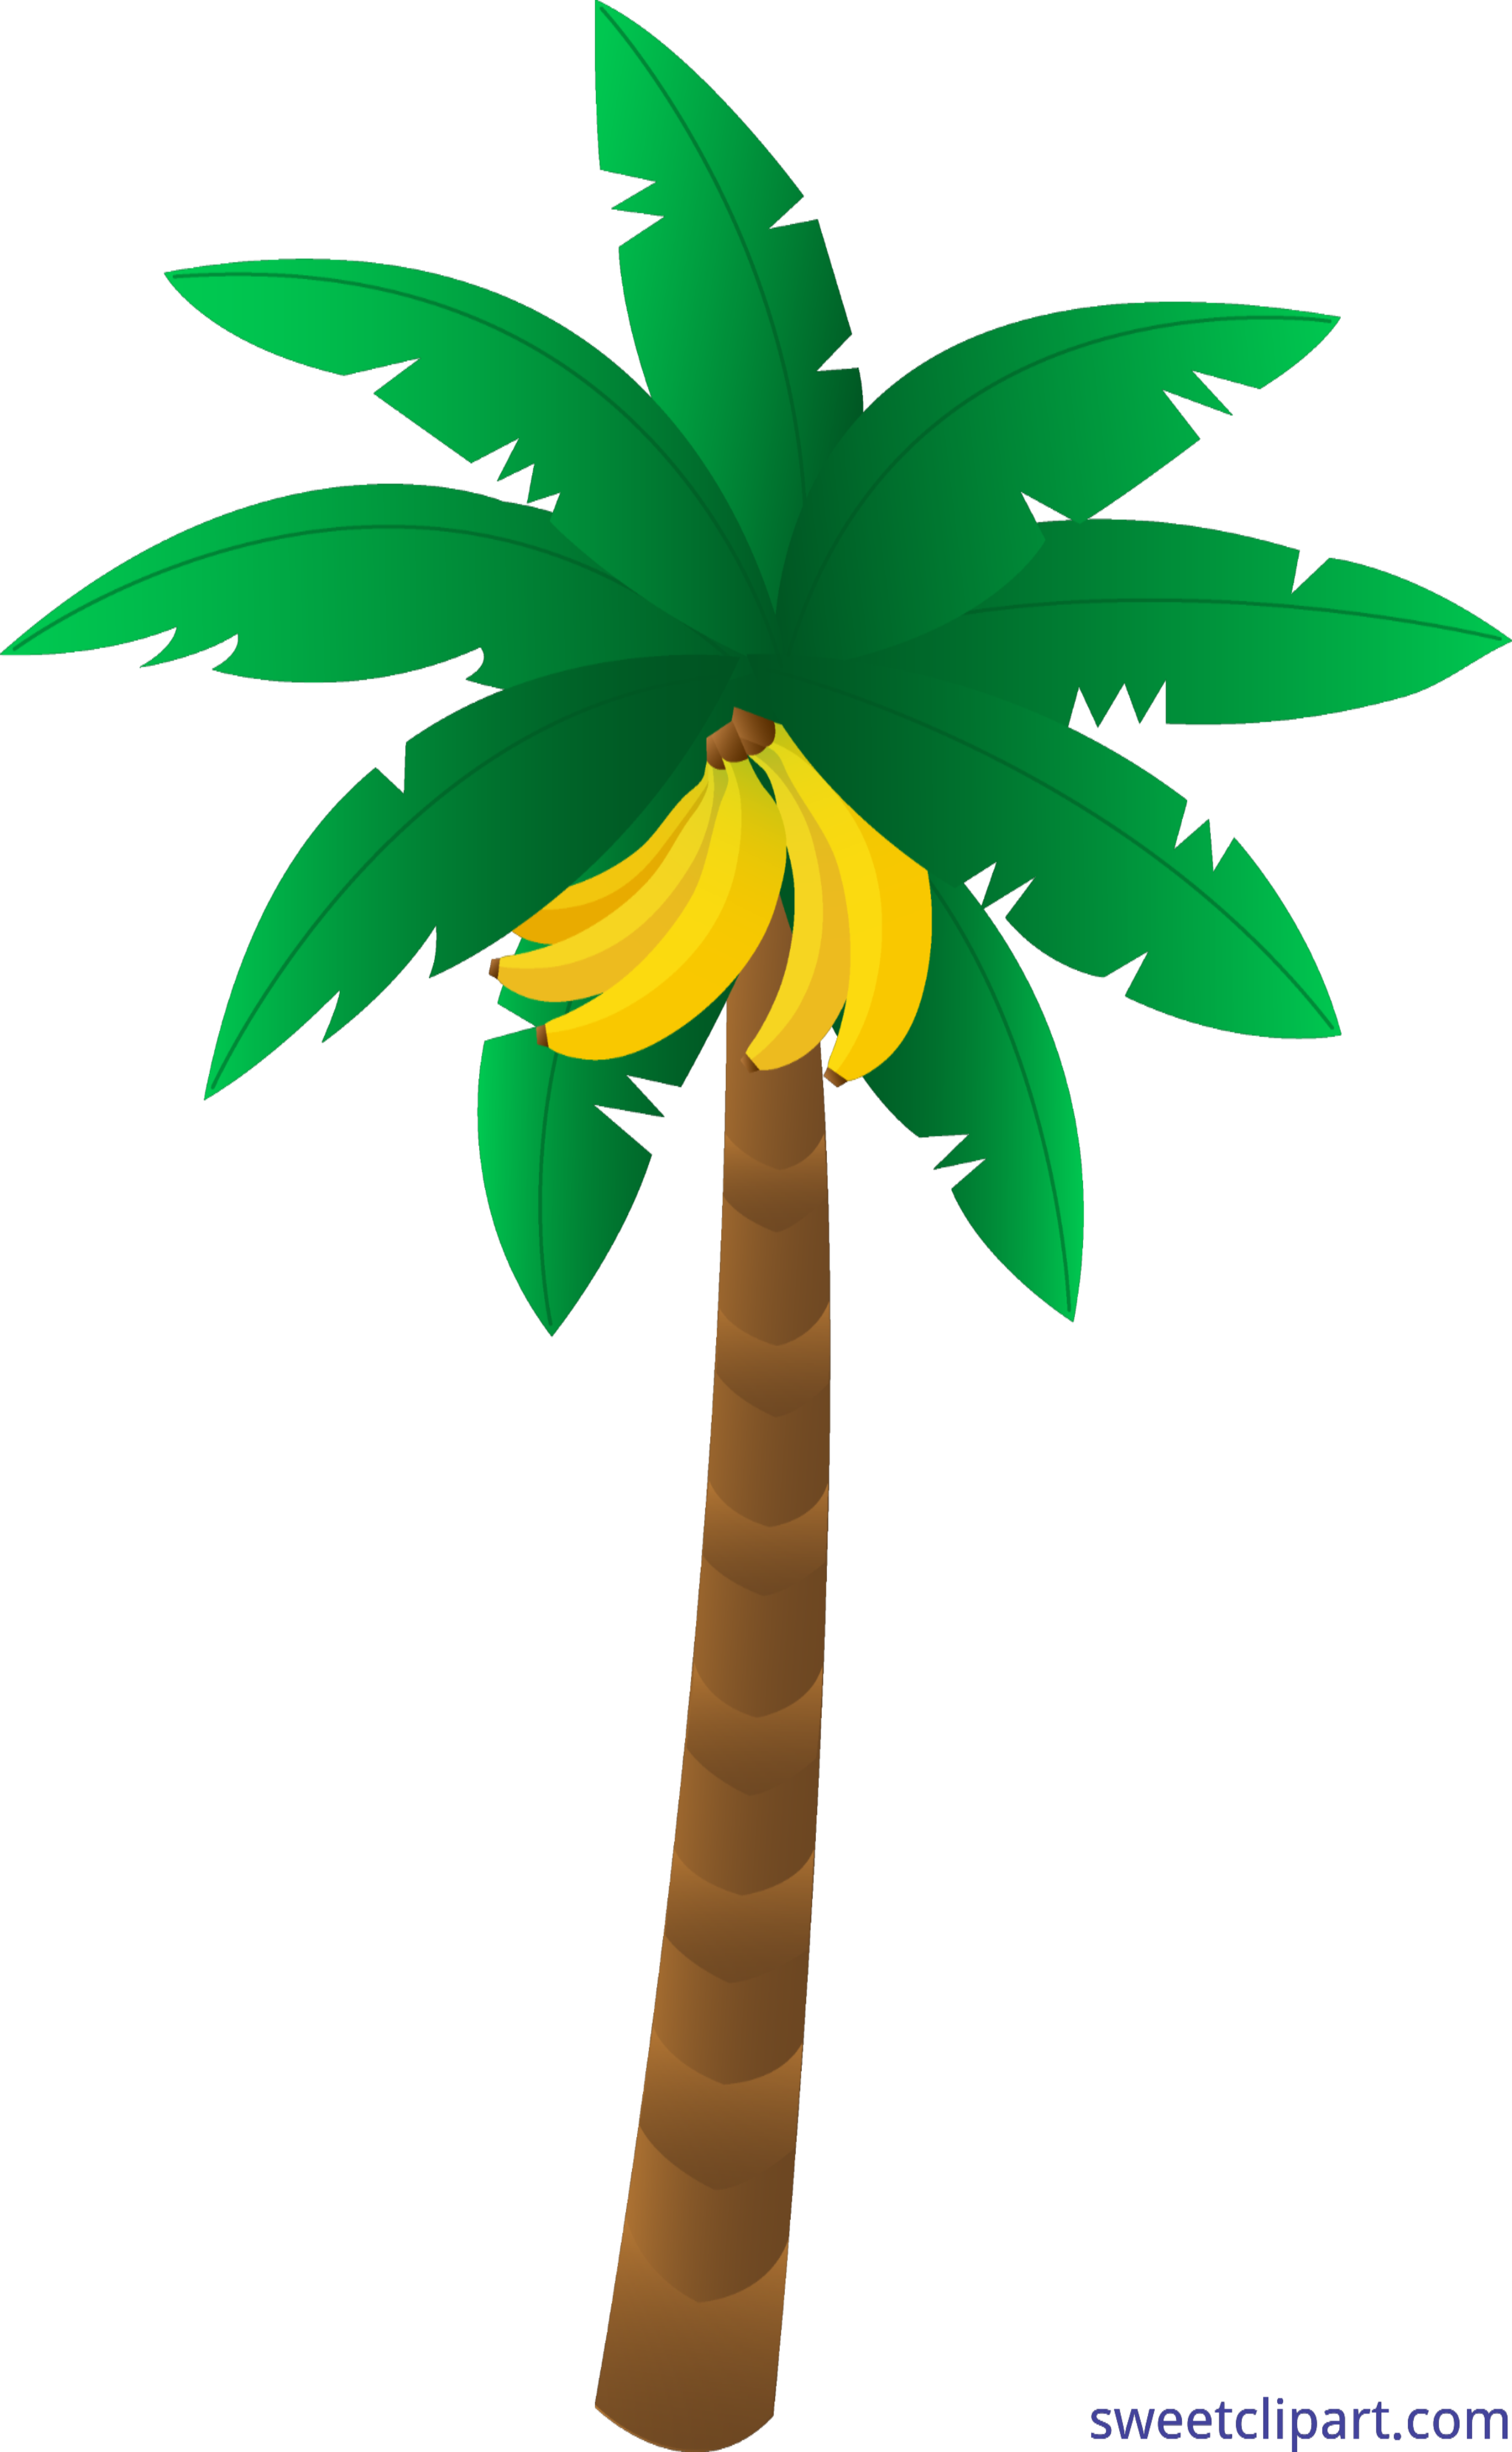 banana tree clip art sweet clip art rh m sweetclipart com banana tree leaves clip art banana tree clip art free